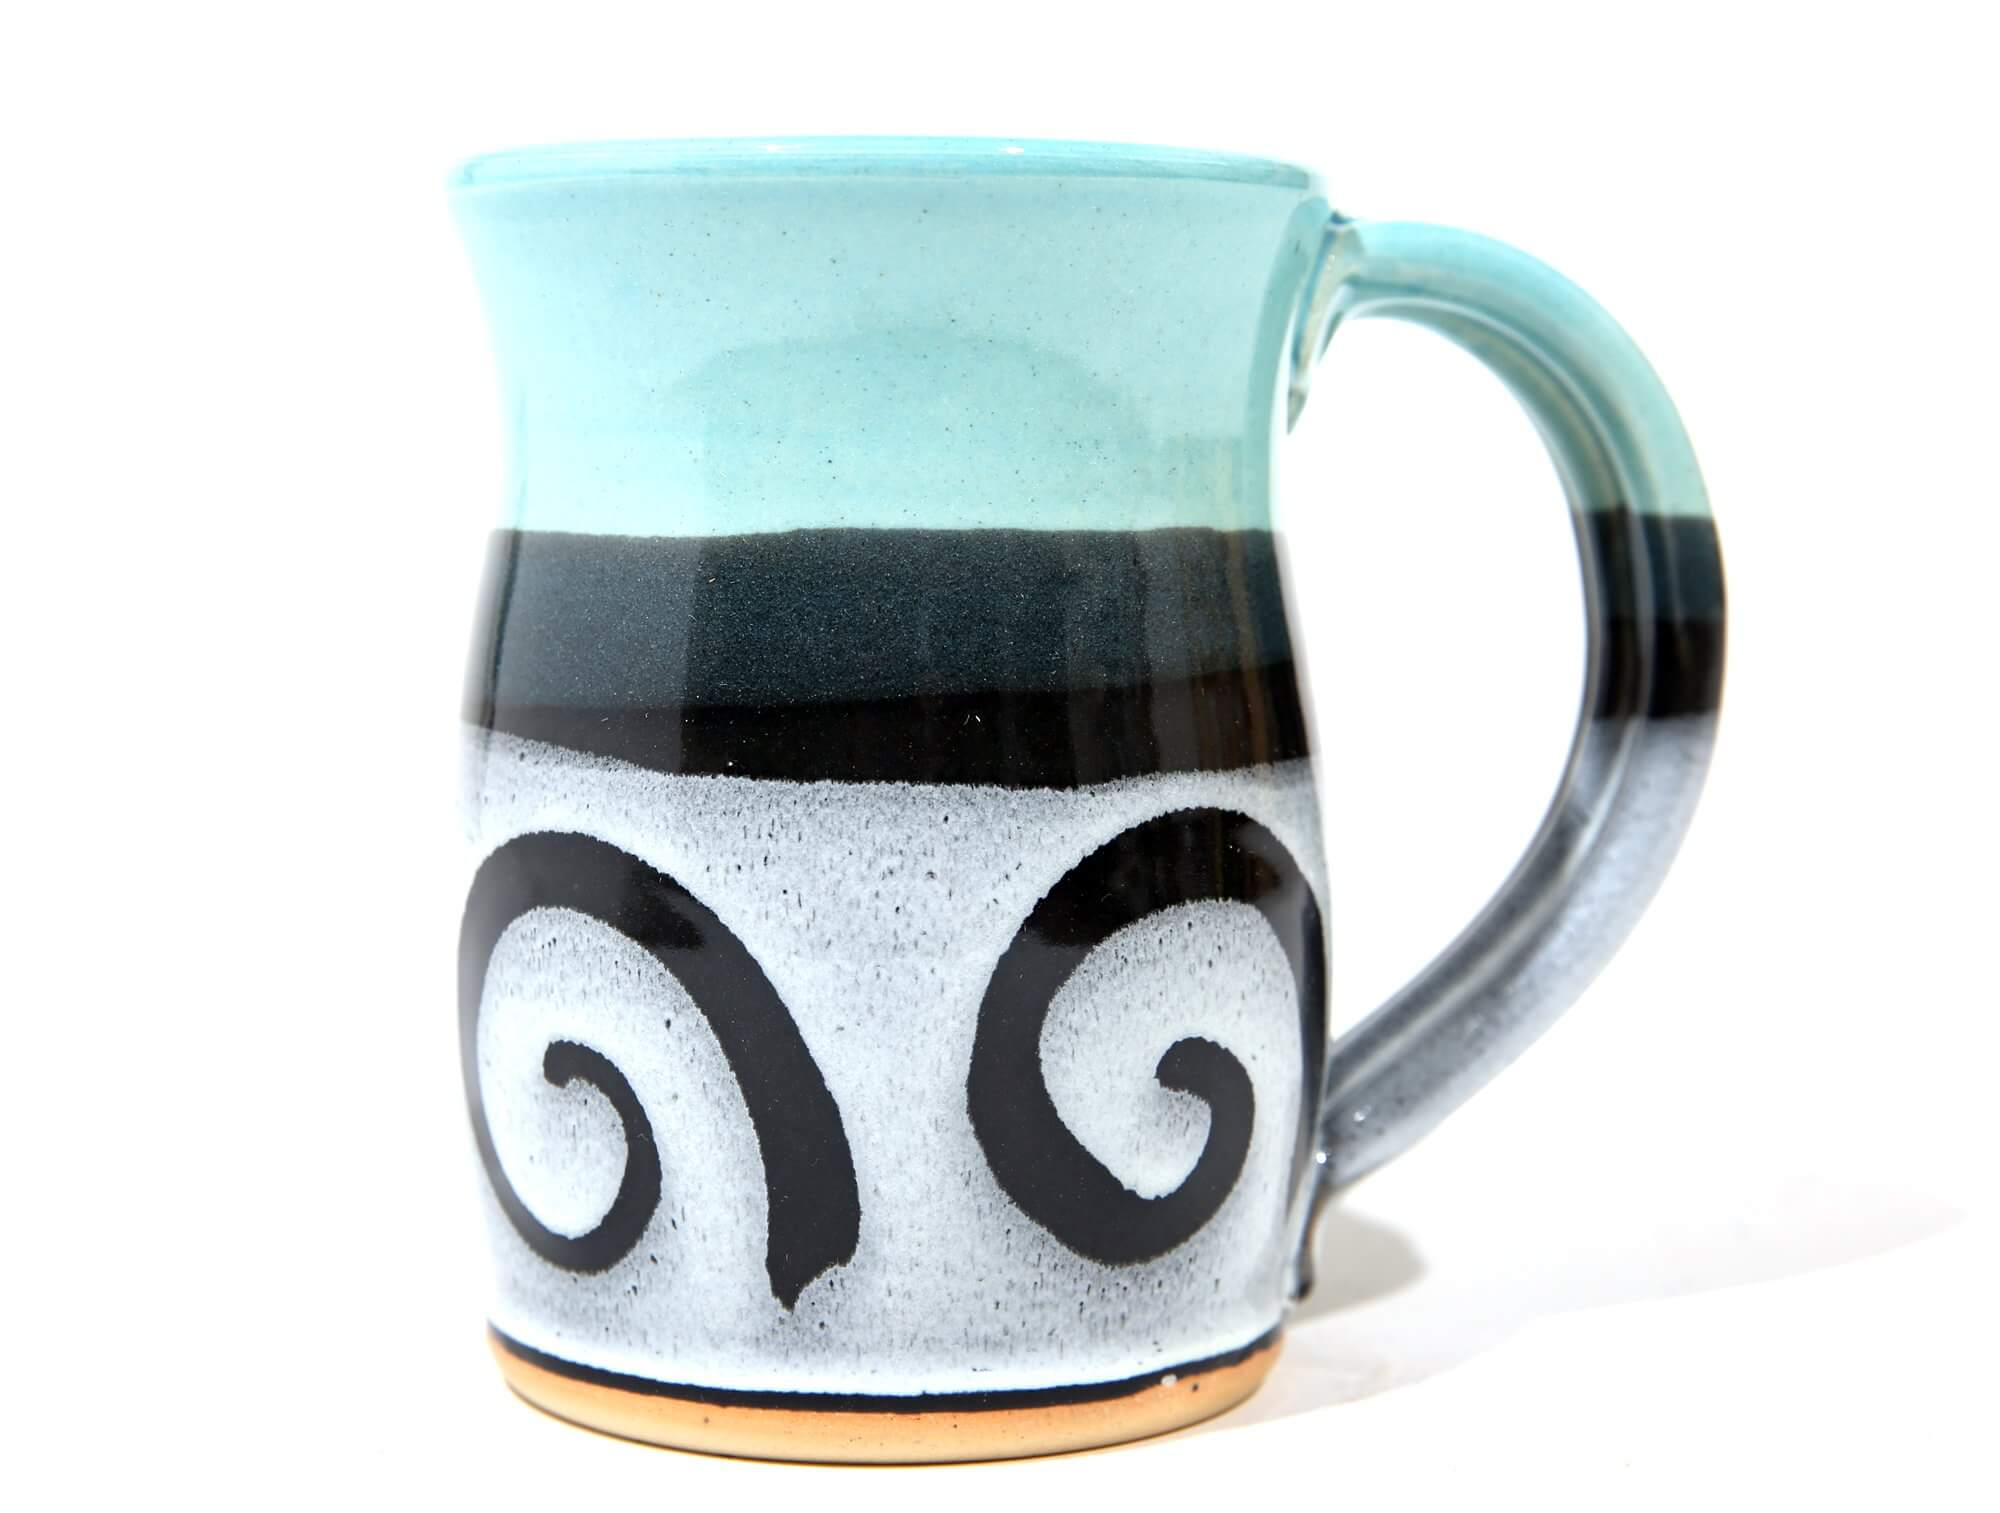 Hand-crafted pottery mug